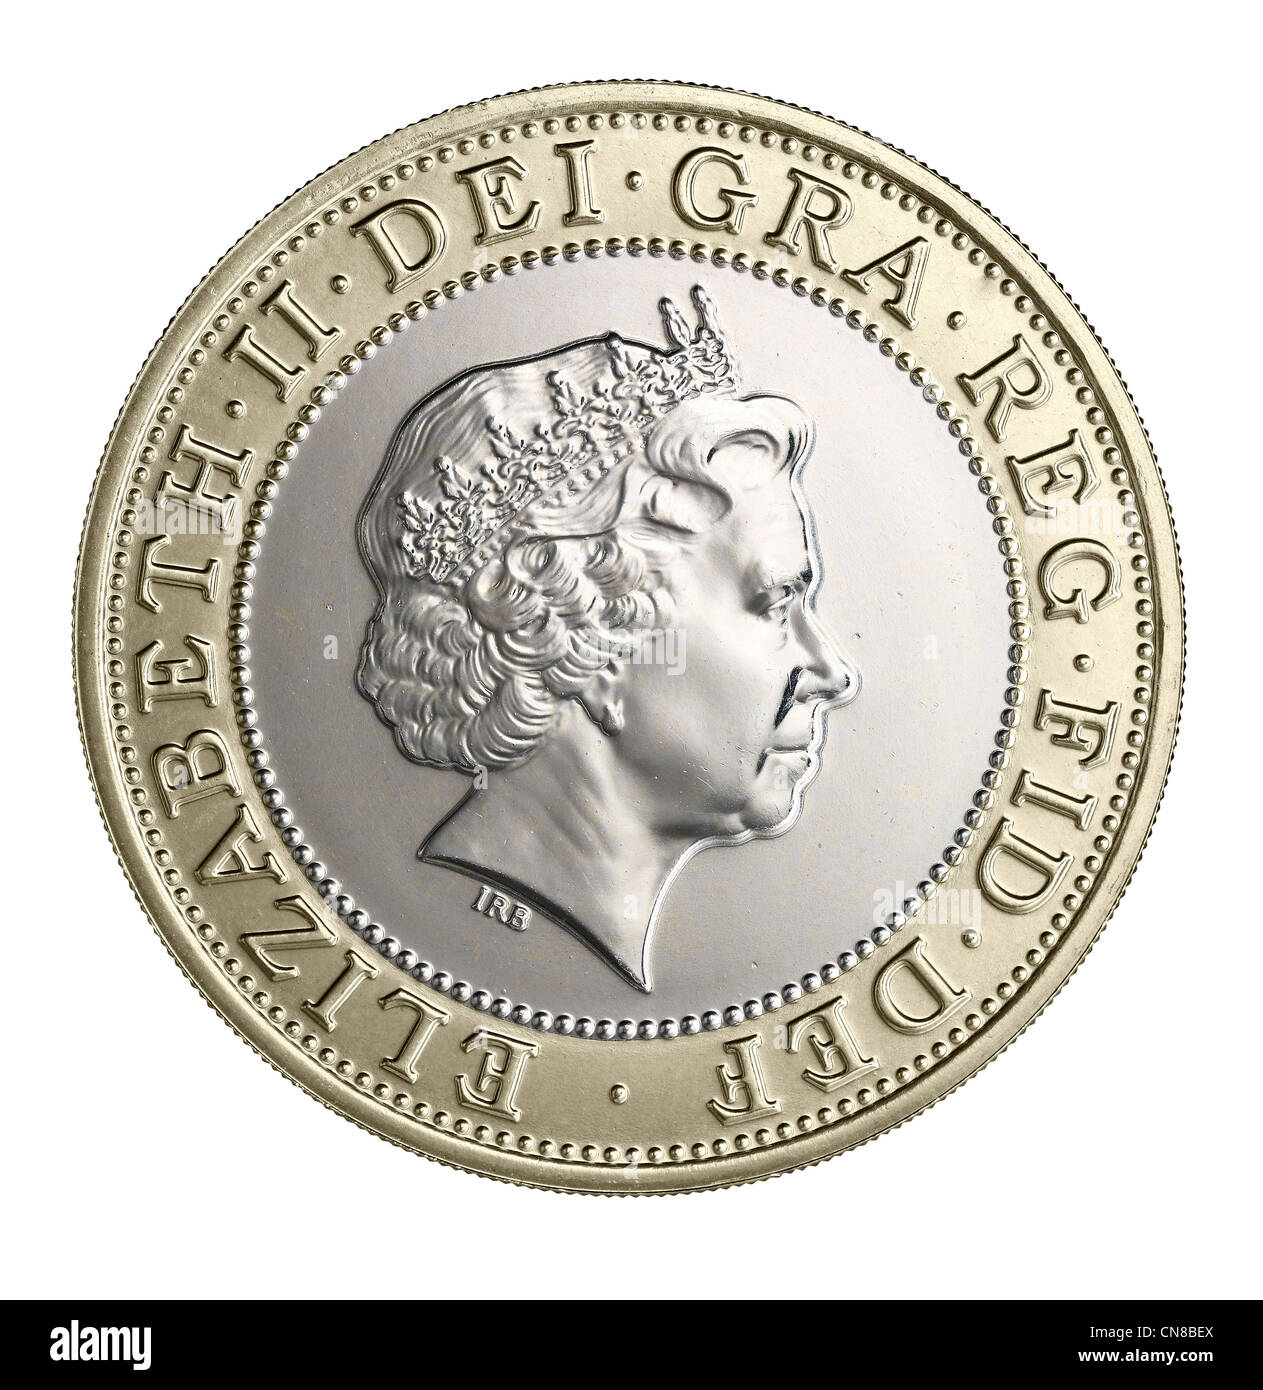 £2 two pound coin head on heads obverse 2012 - Stock Image